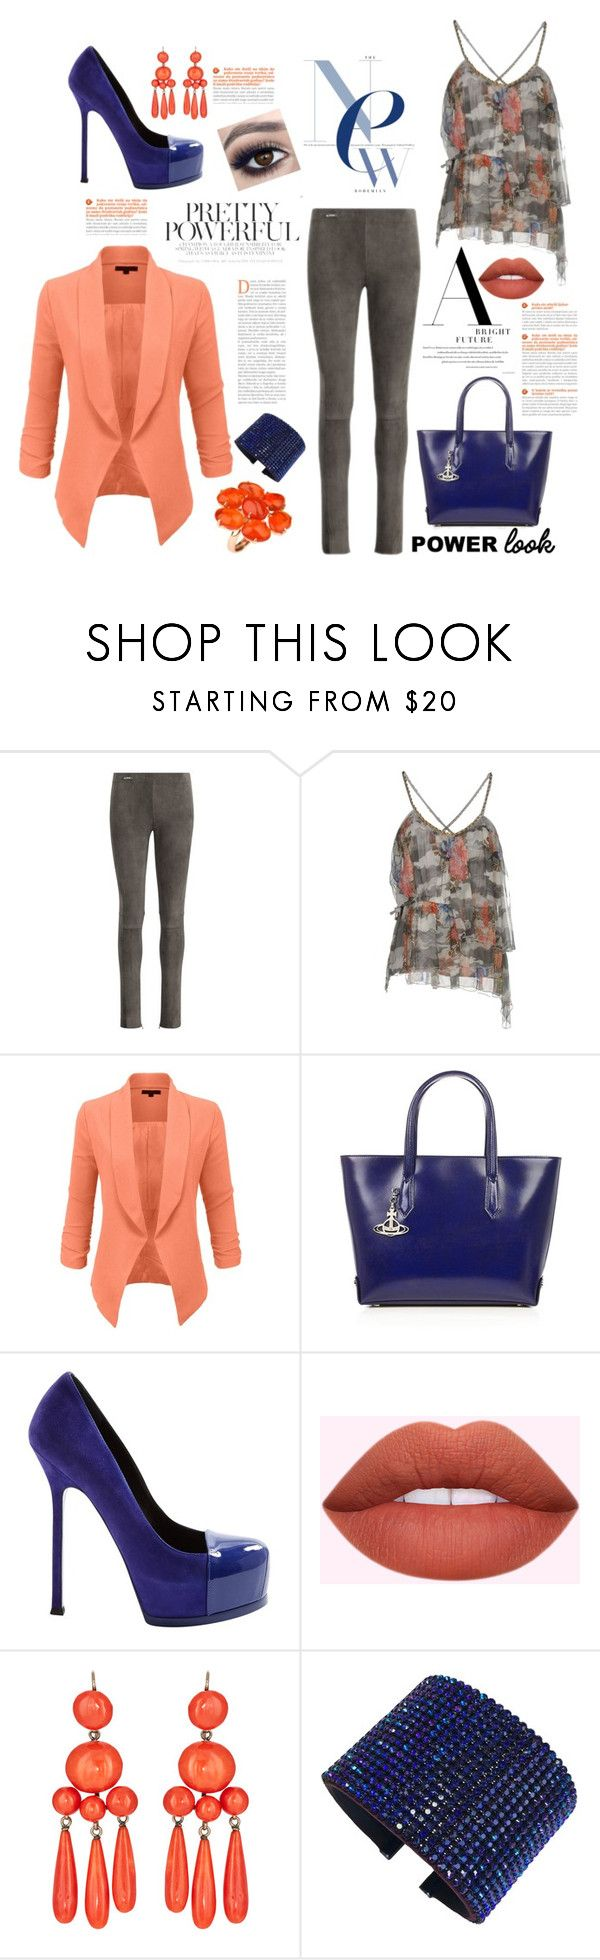 """""""Pretty Powerful"""" by shearenvy ❤ liked on Polyvore featuring Polo Ralph Lauren, Atos Lombardini, LE3NO, Vivienne Westwood, Yves Saint Laurent, Swarovski, Blue, coral, suede and floralprint"""